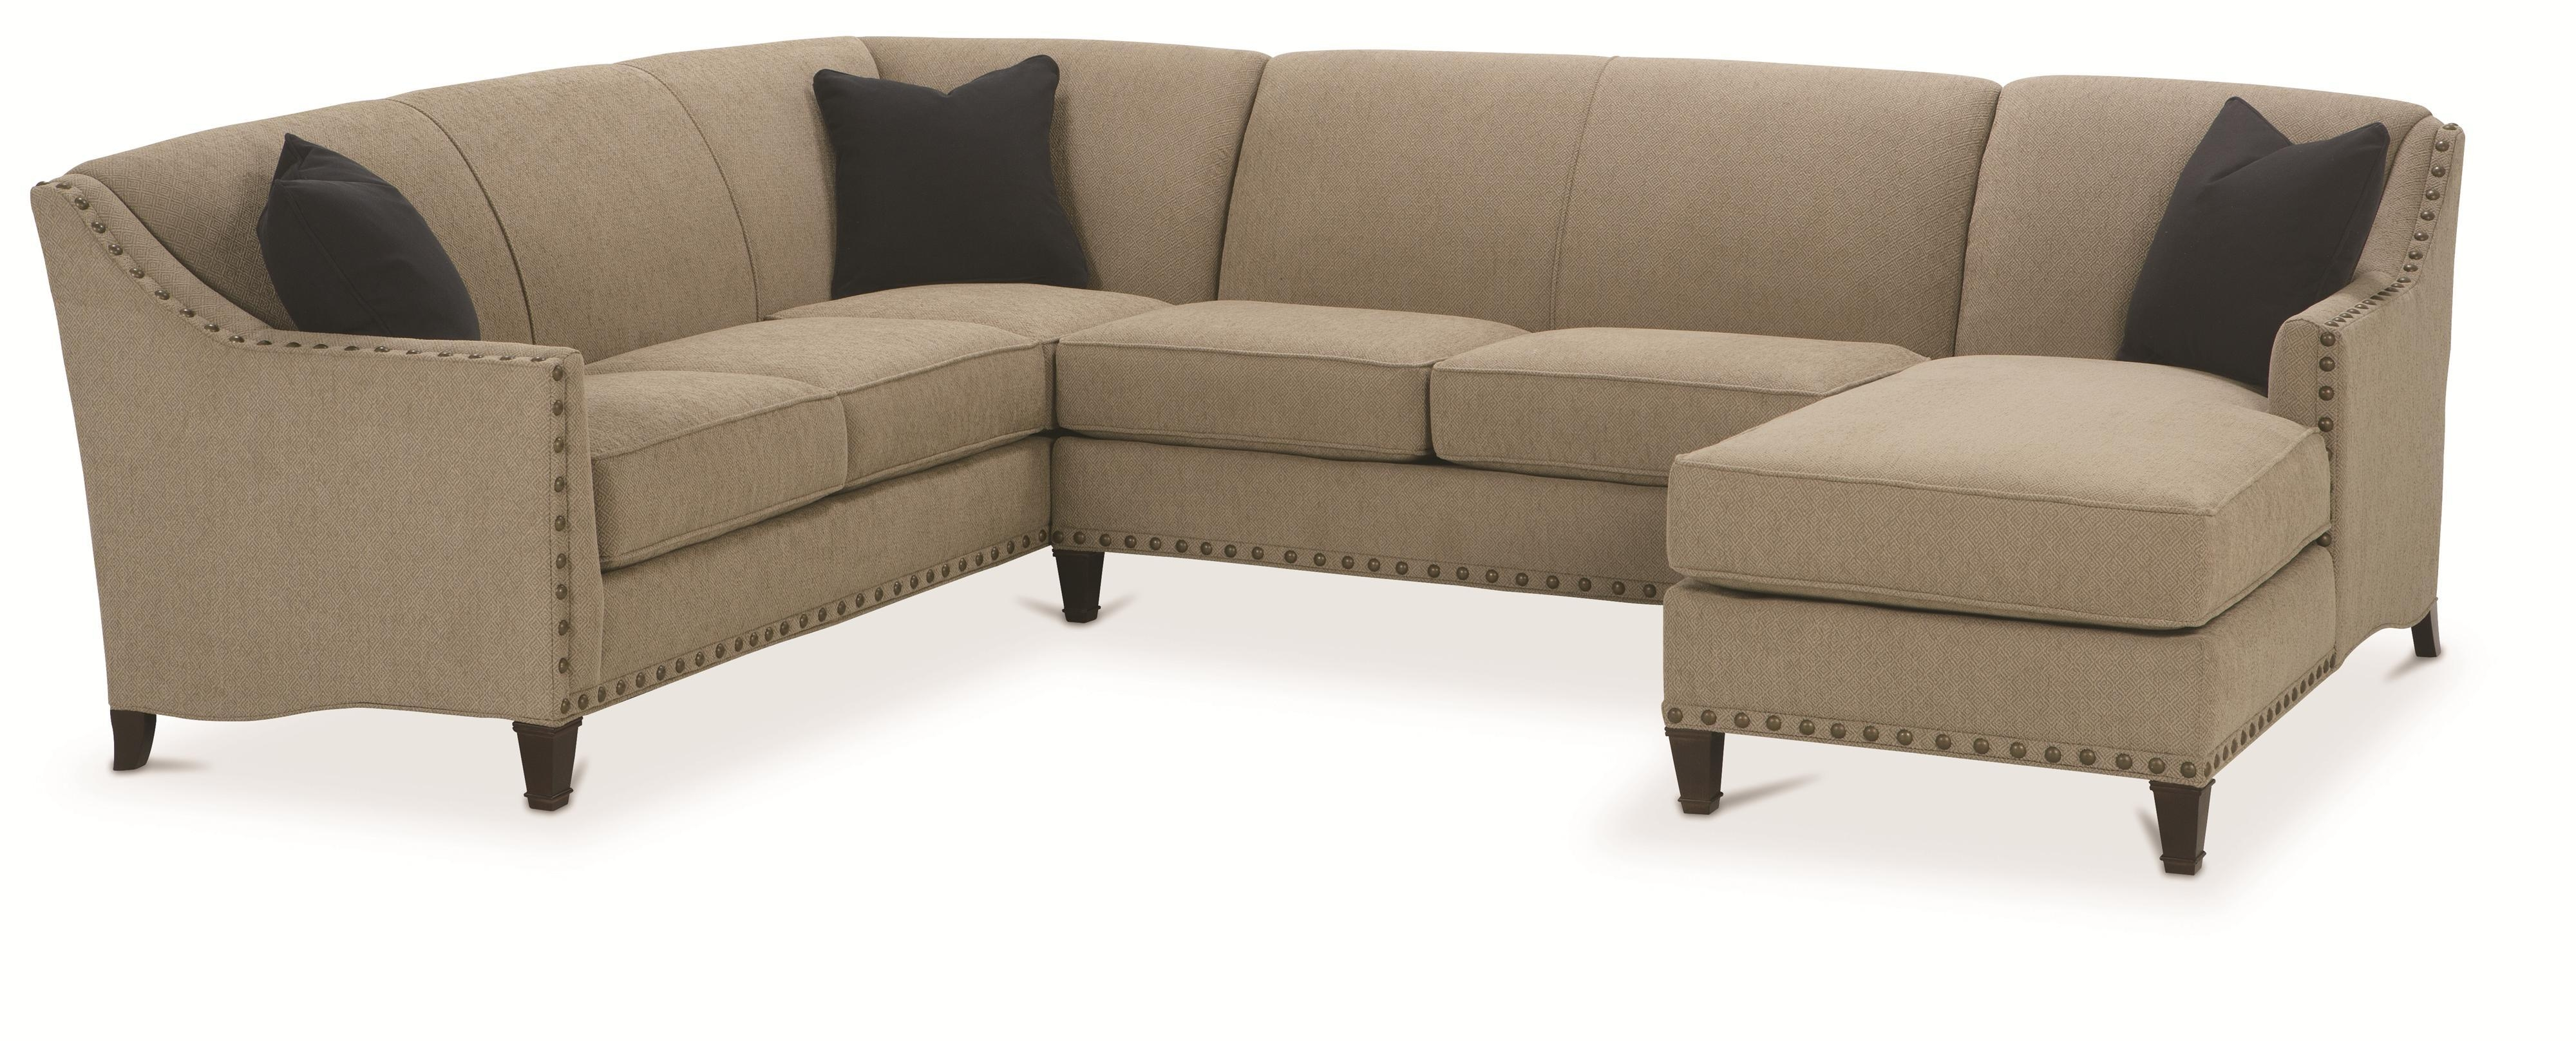 Sofas Center : 45 Beautiful Traditional Sectional Sofas Photos With Regard To Traditional Sectional Sofas (View 8 of 20)